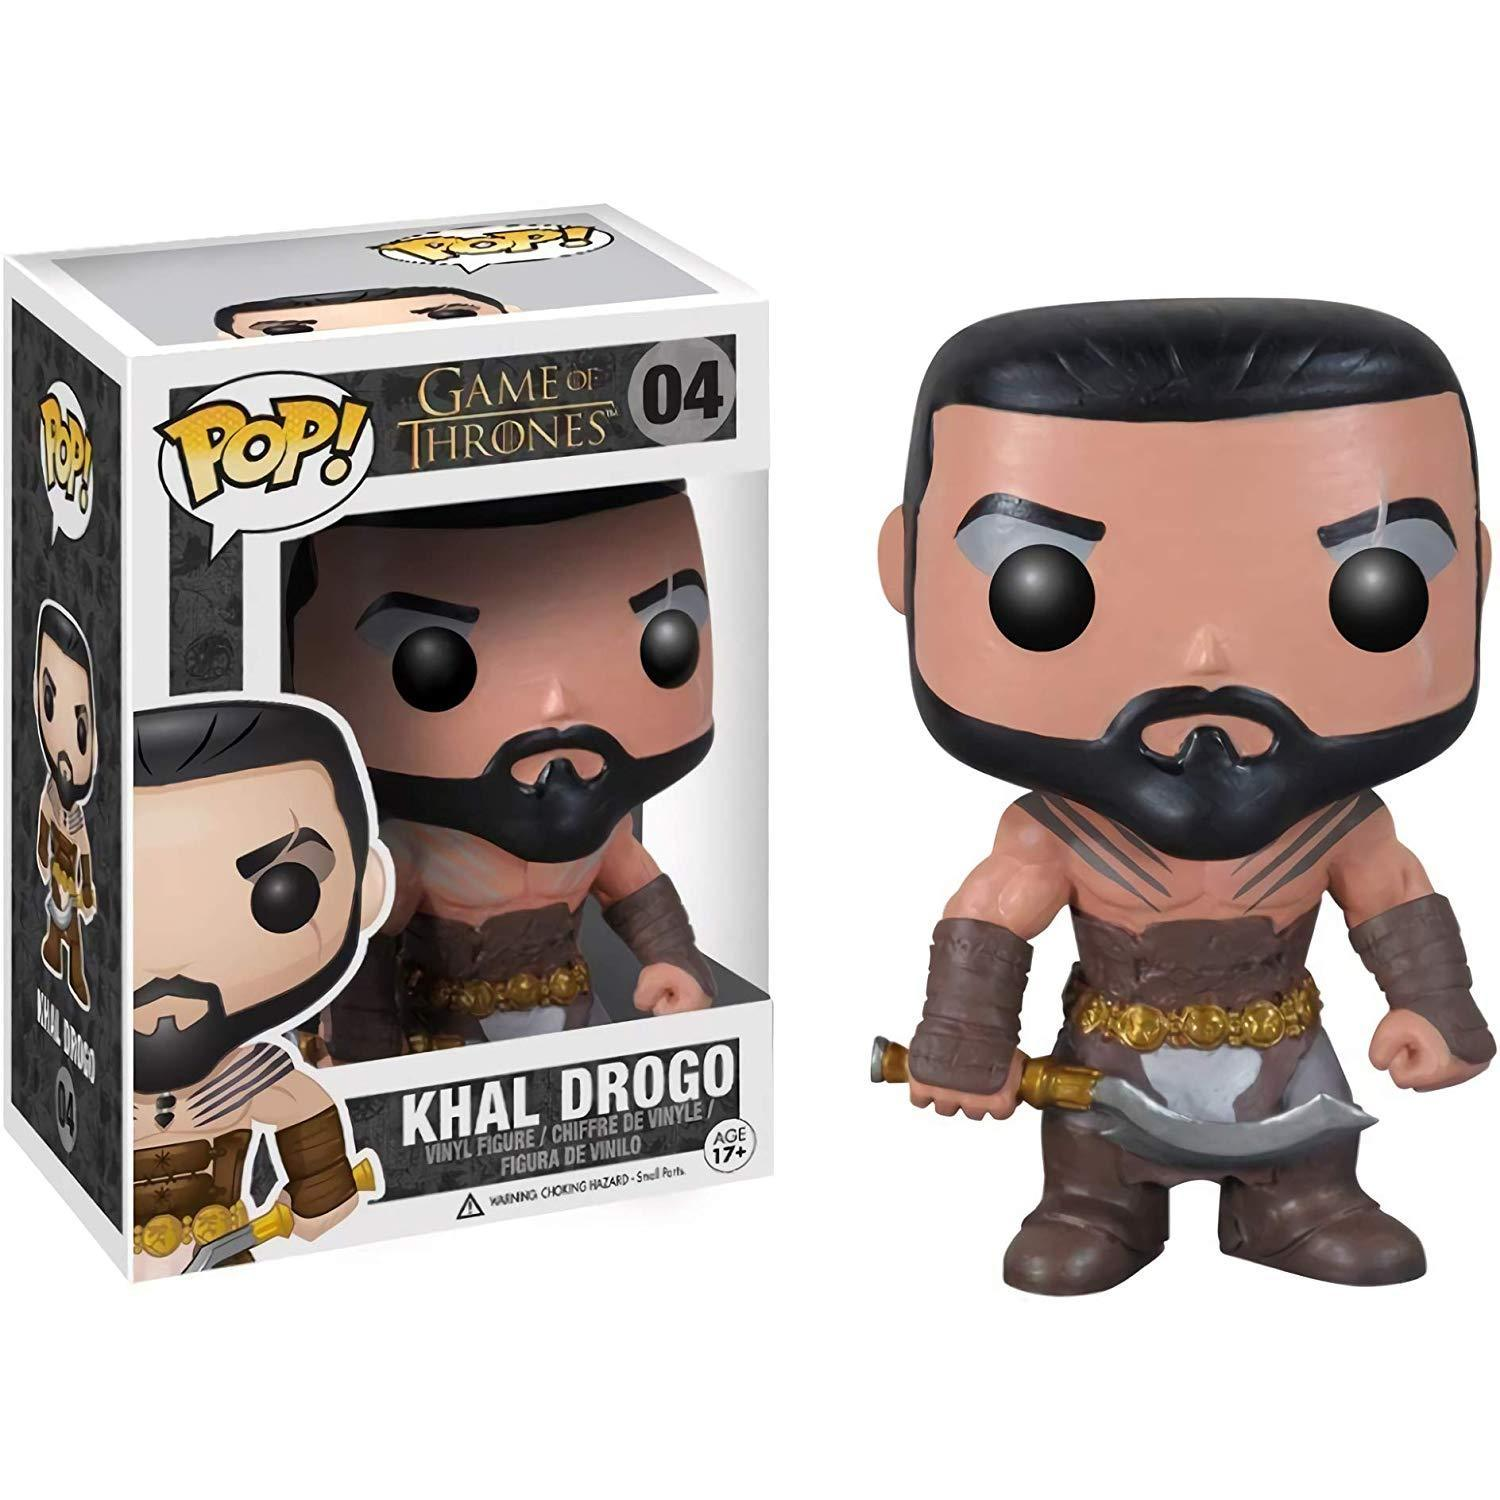 Official Funko pop Game of Thrones - Khal Drogo Vinyl Action Figure Collectible